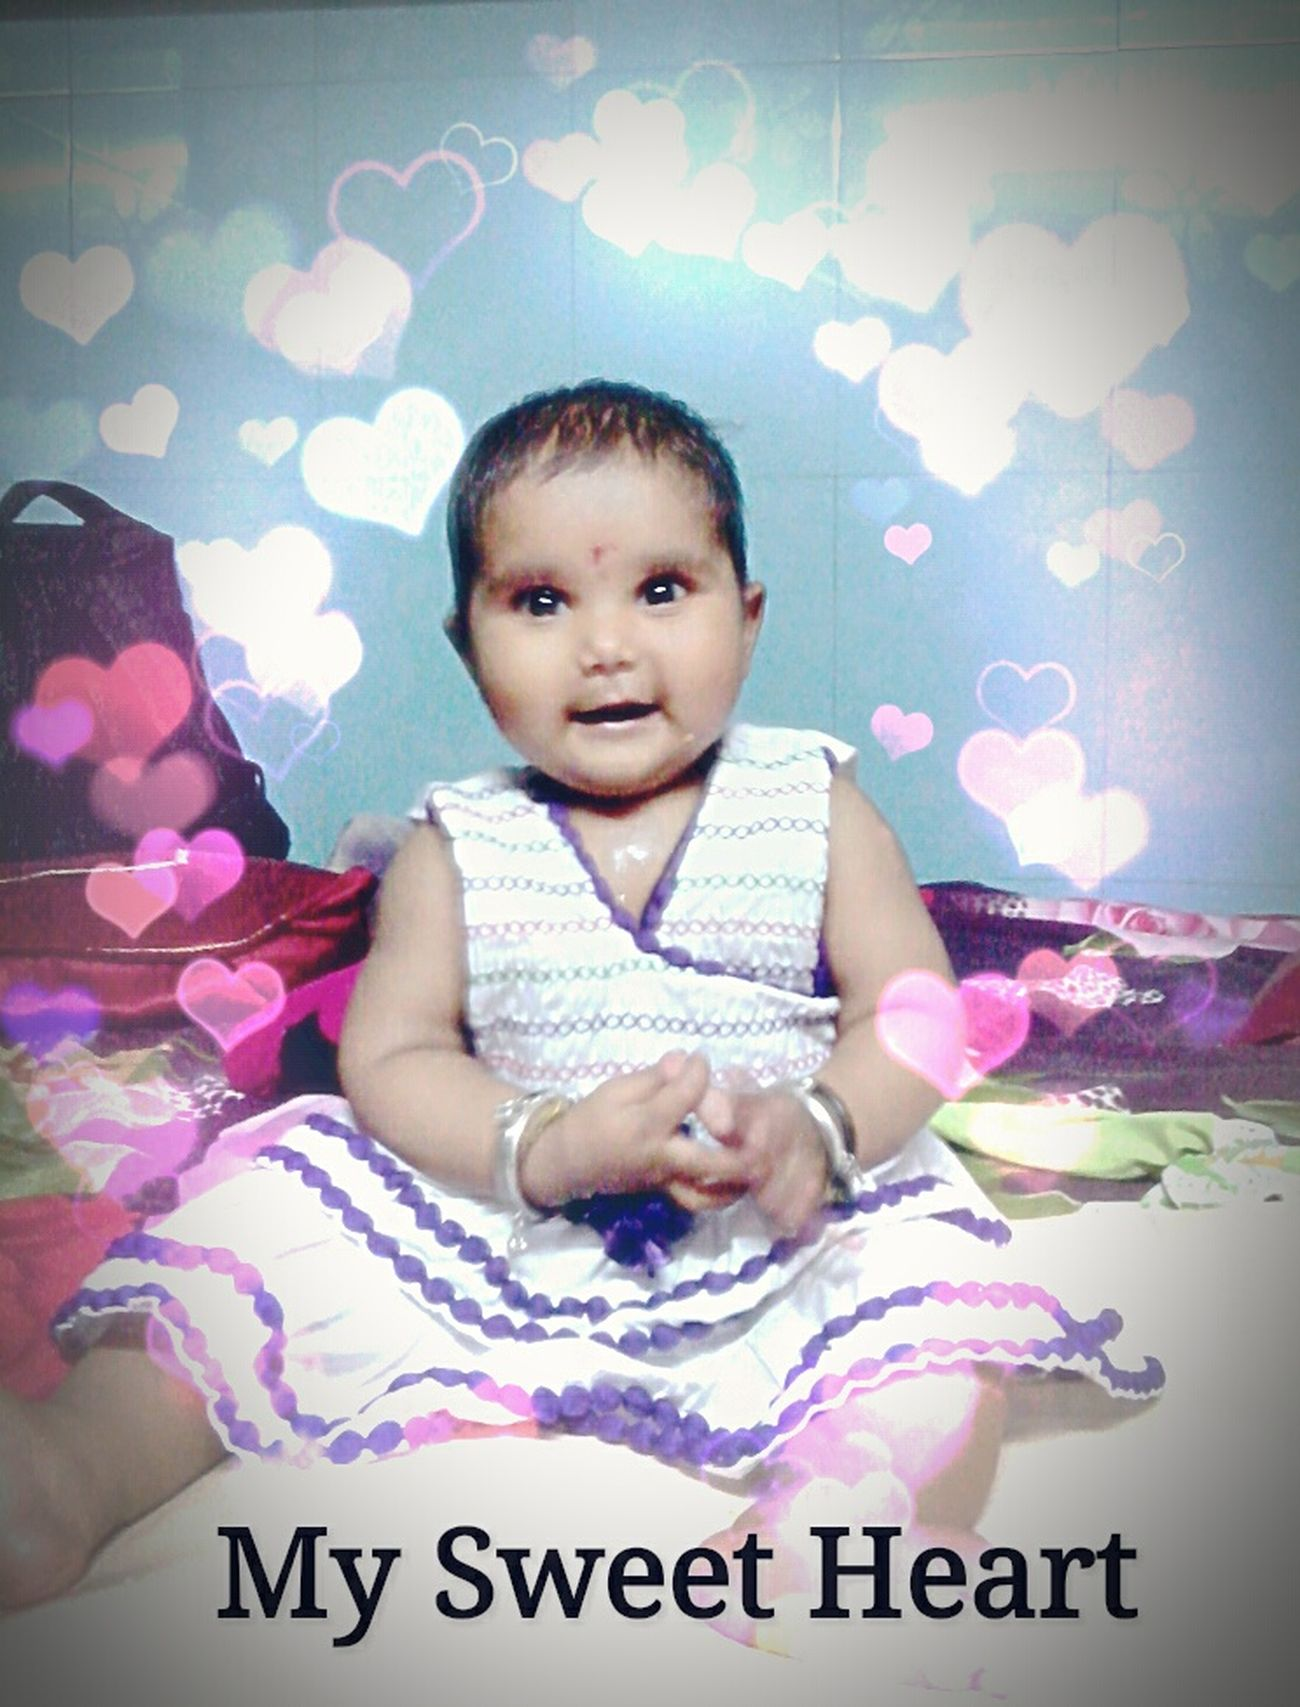 My Sweet Heart